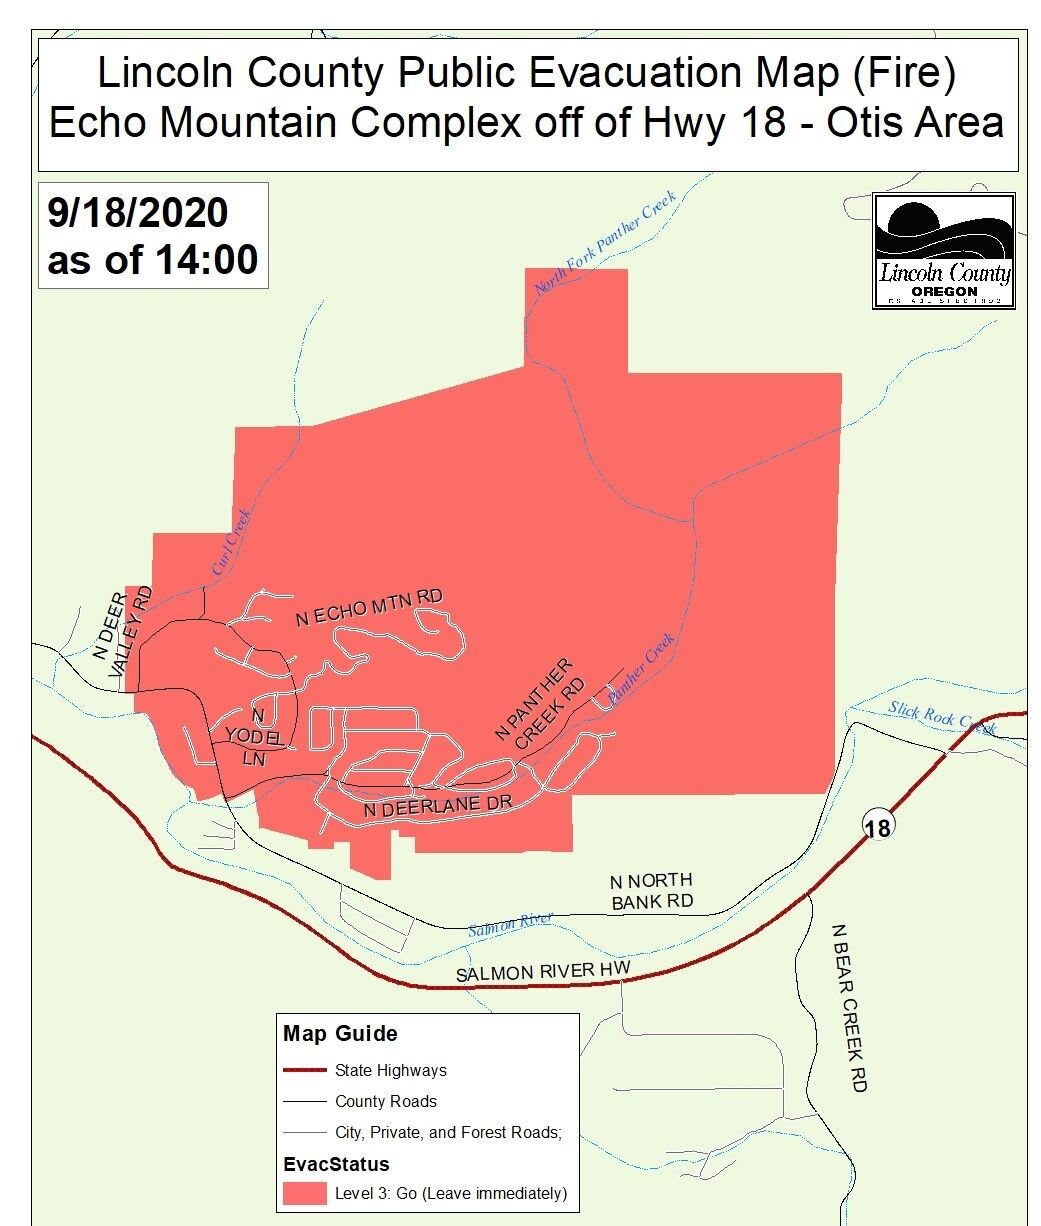 All Level 2 Evacuation Levels Removed Near Echo Mountain